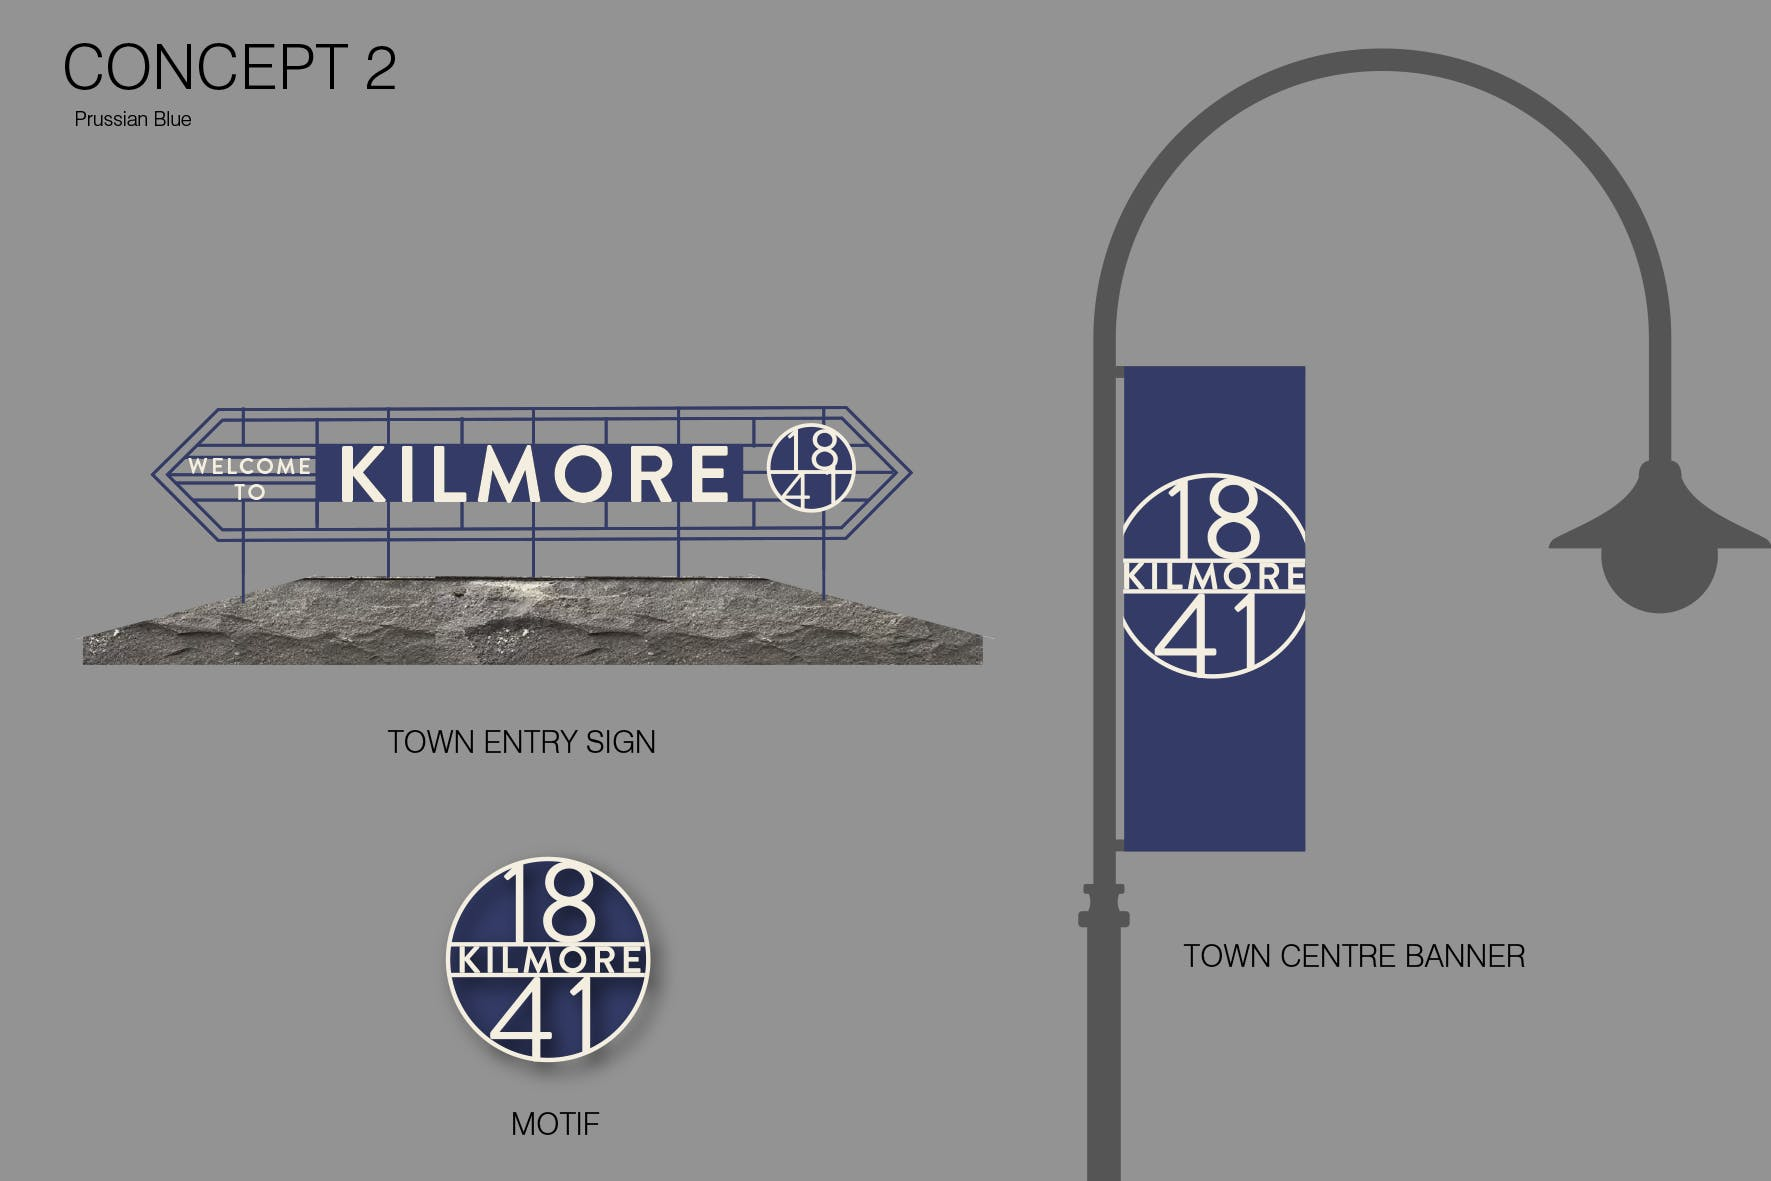 Town entry, motif and banner in blue